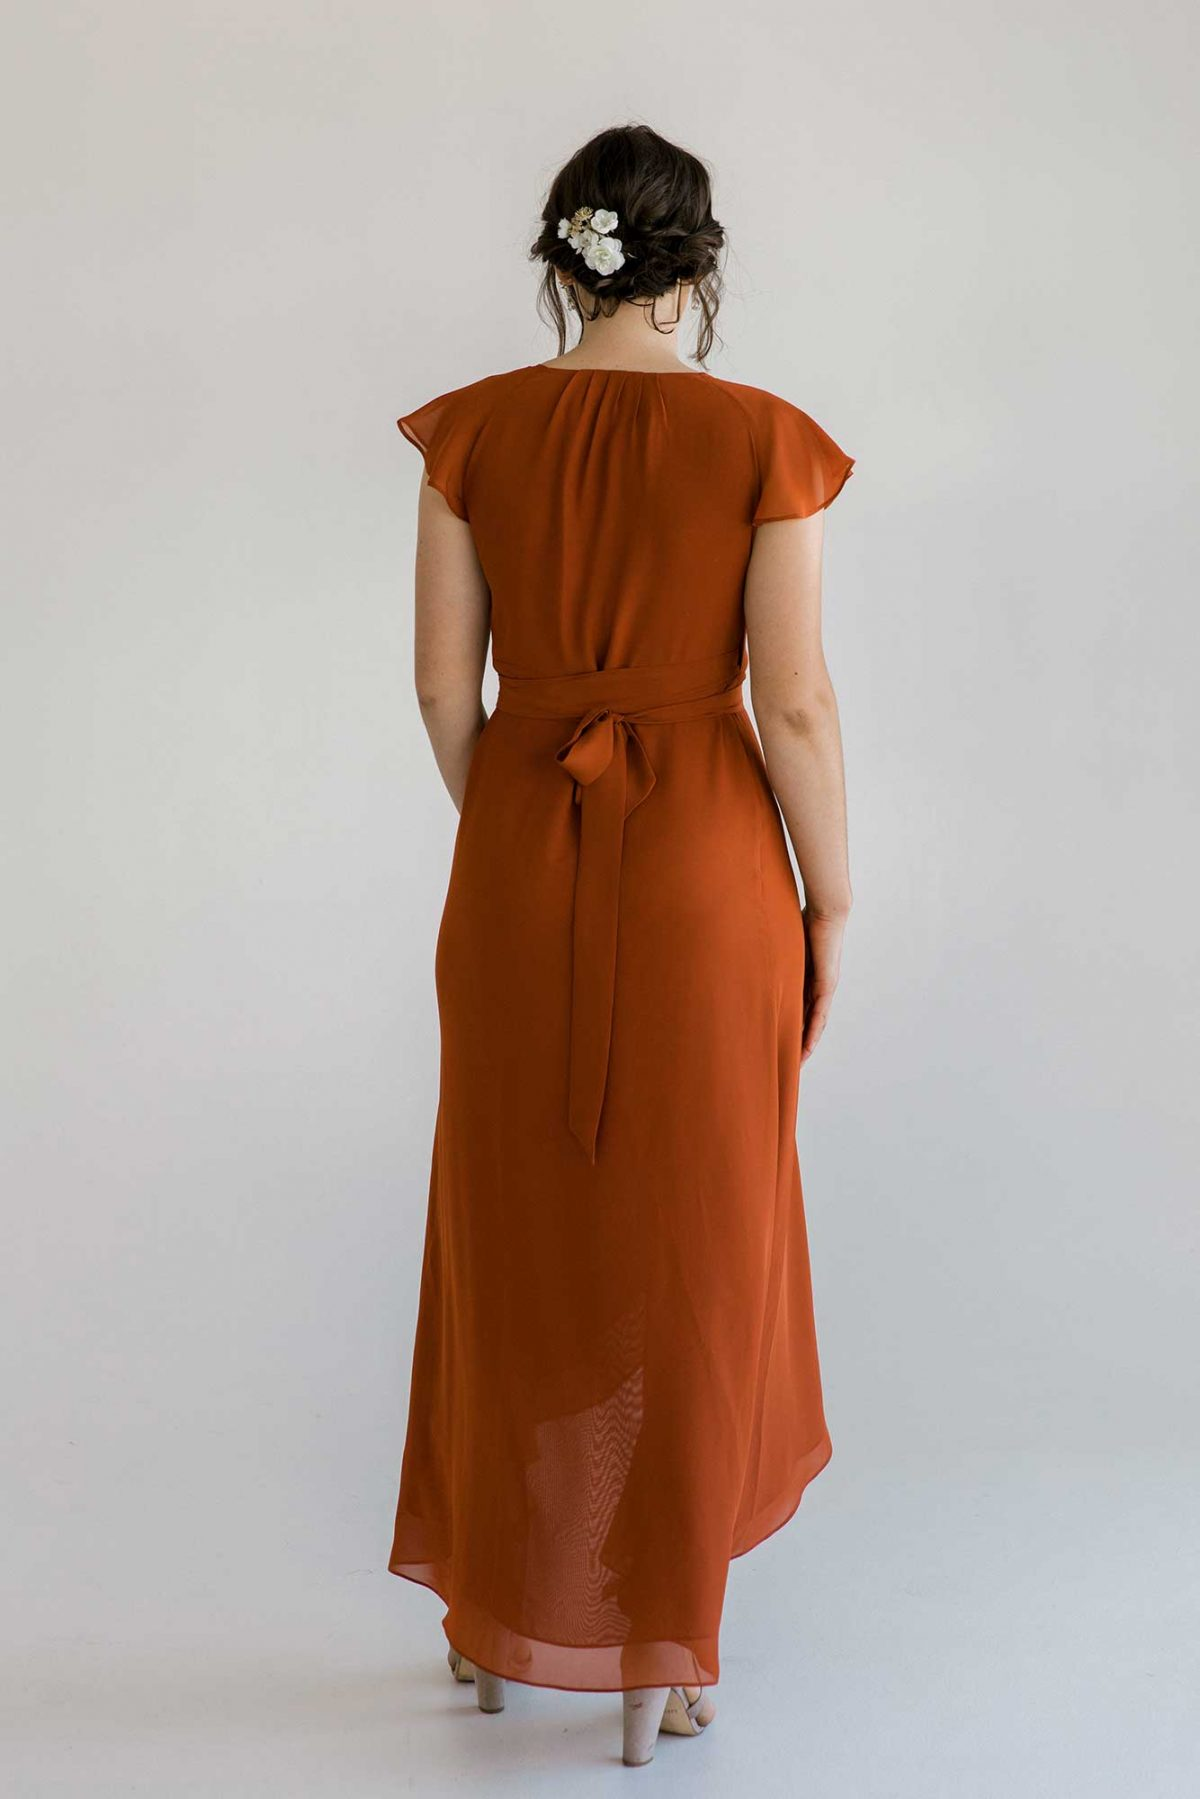 Marianne dress in burnt orange dress back view